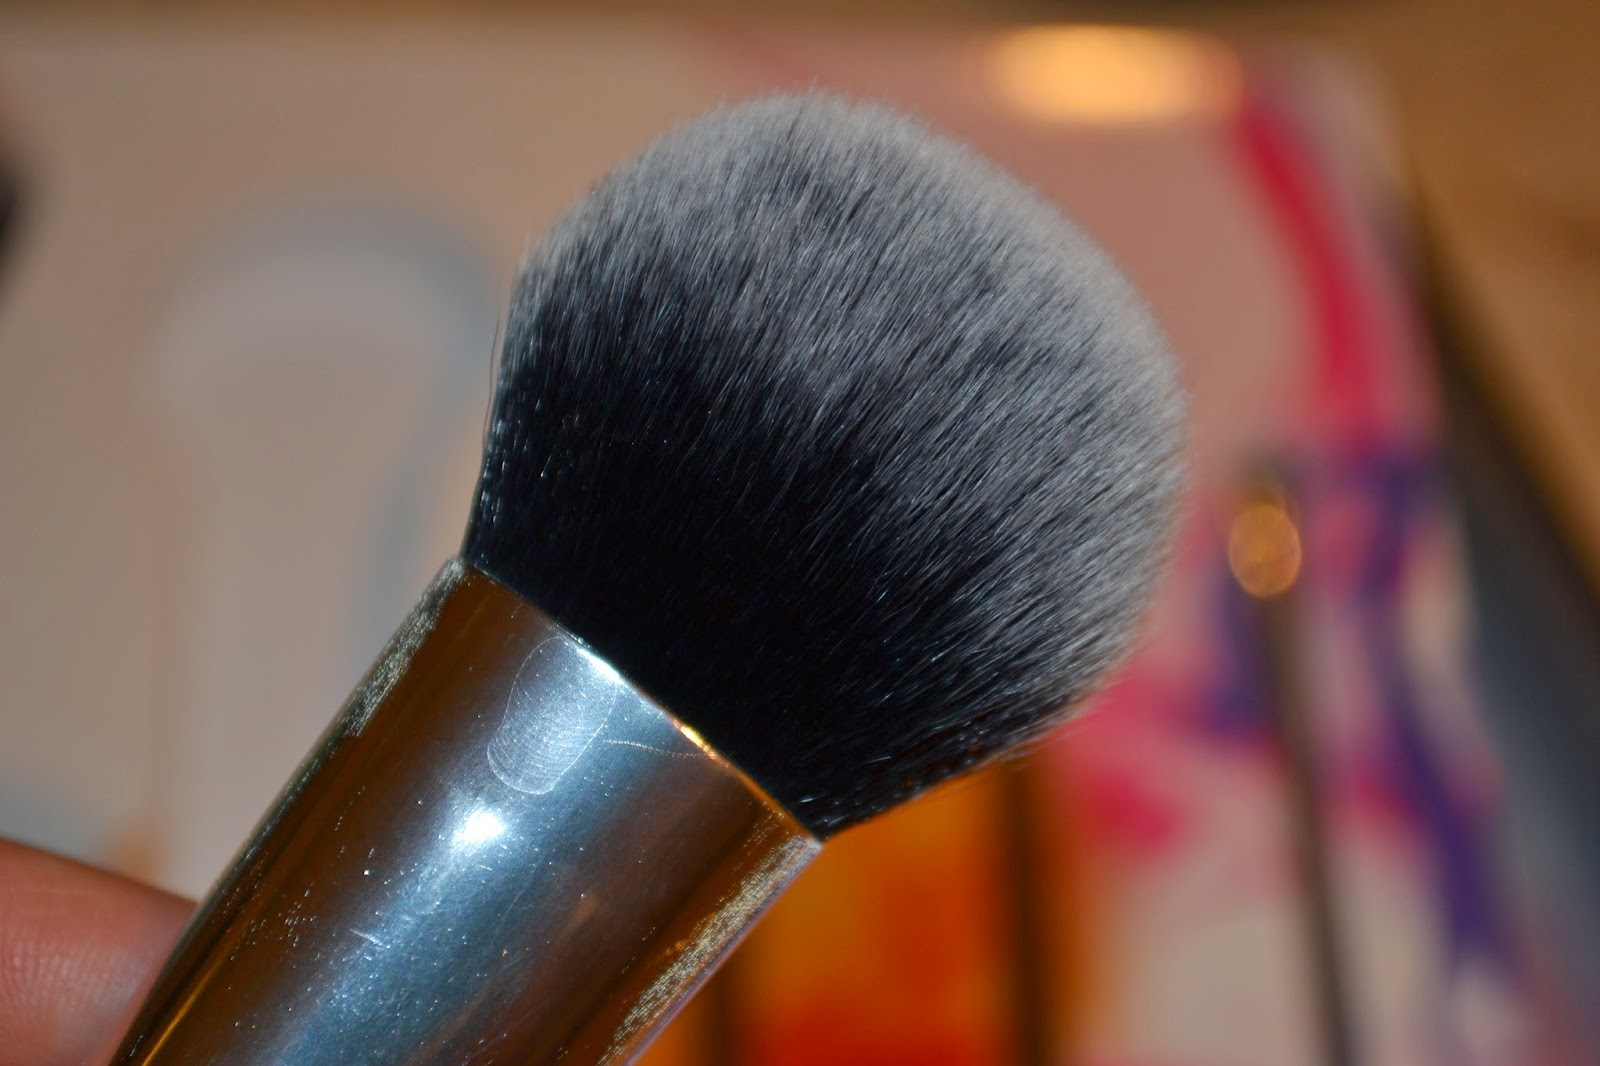 Real Techniques Nic's Picks Brush set - cheek brush